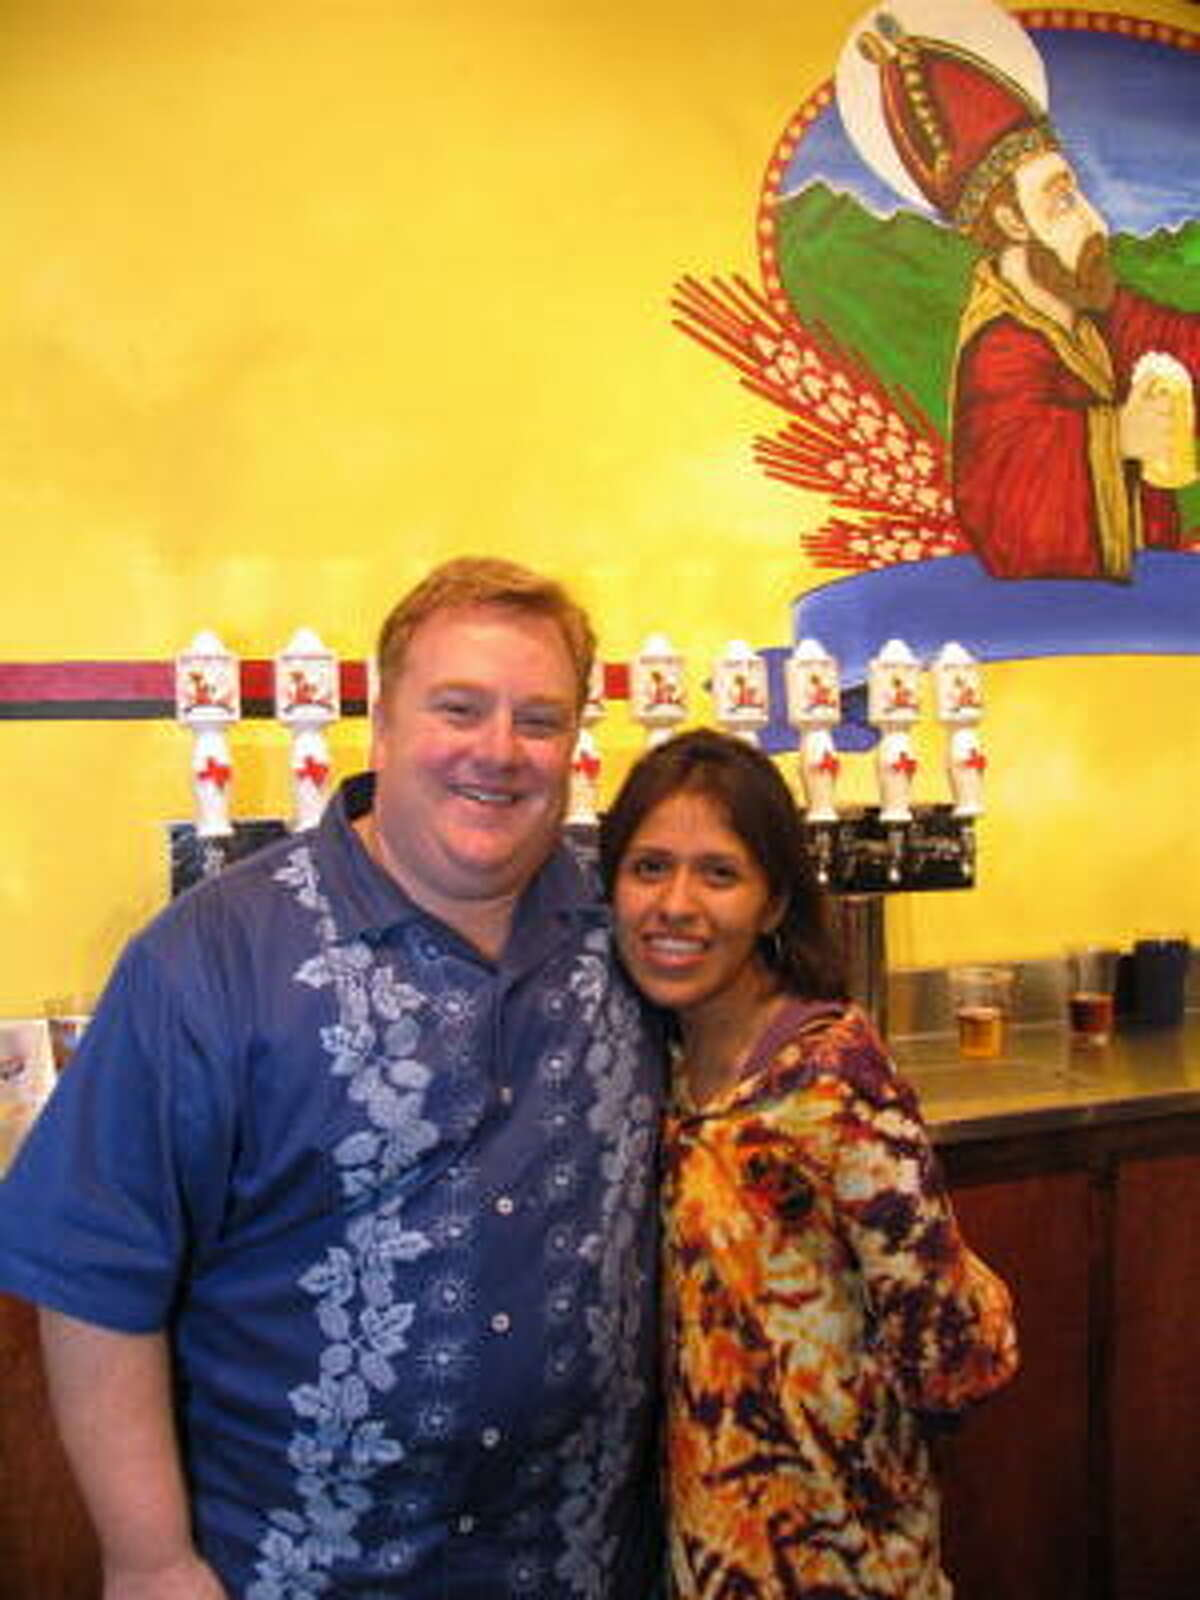 Beer-lovers celebrated the opening of Saint Arnold's downtown brewery Thursday night. Pictured: Ken Kowis, left, and Teresa Chavez. Read more about Saint Arnold's expansion and grand opening here.